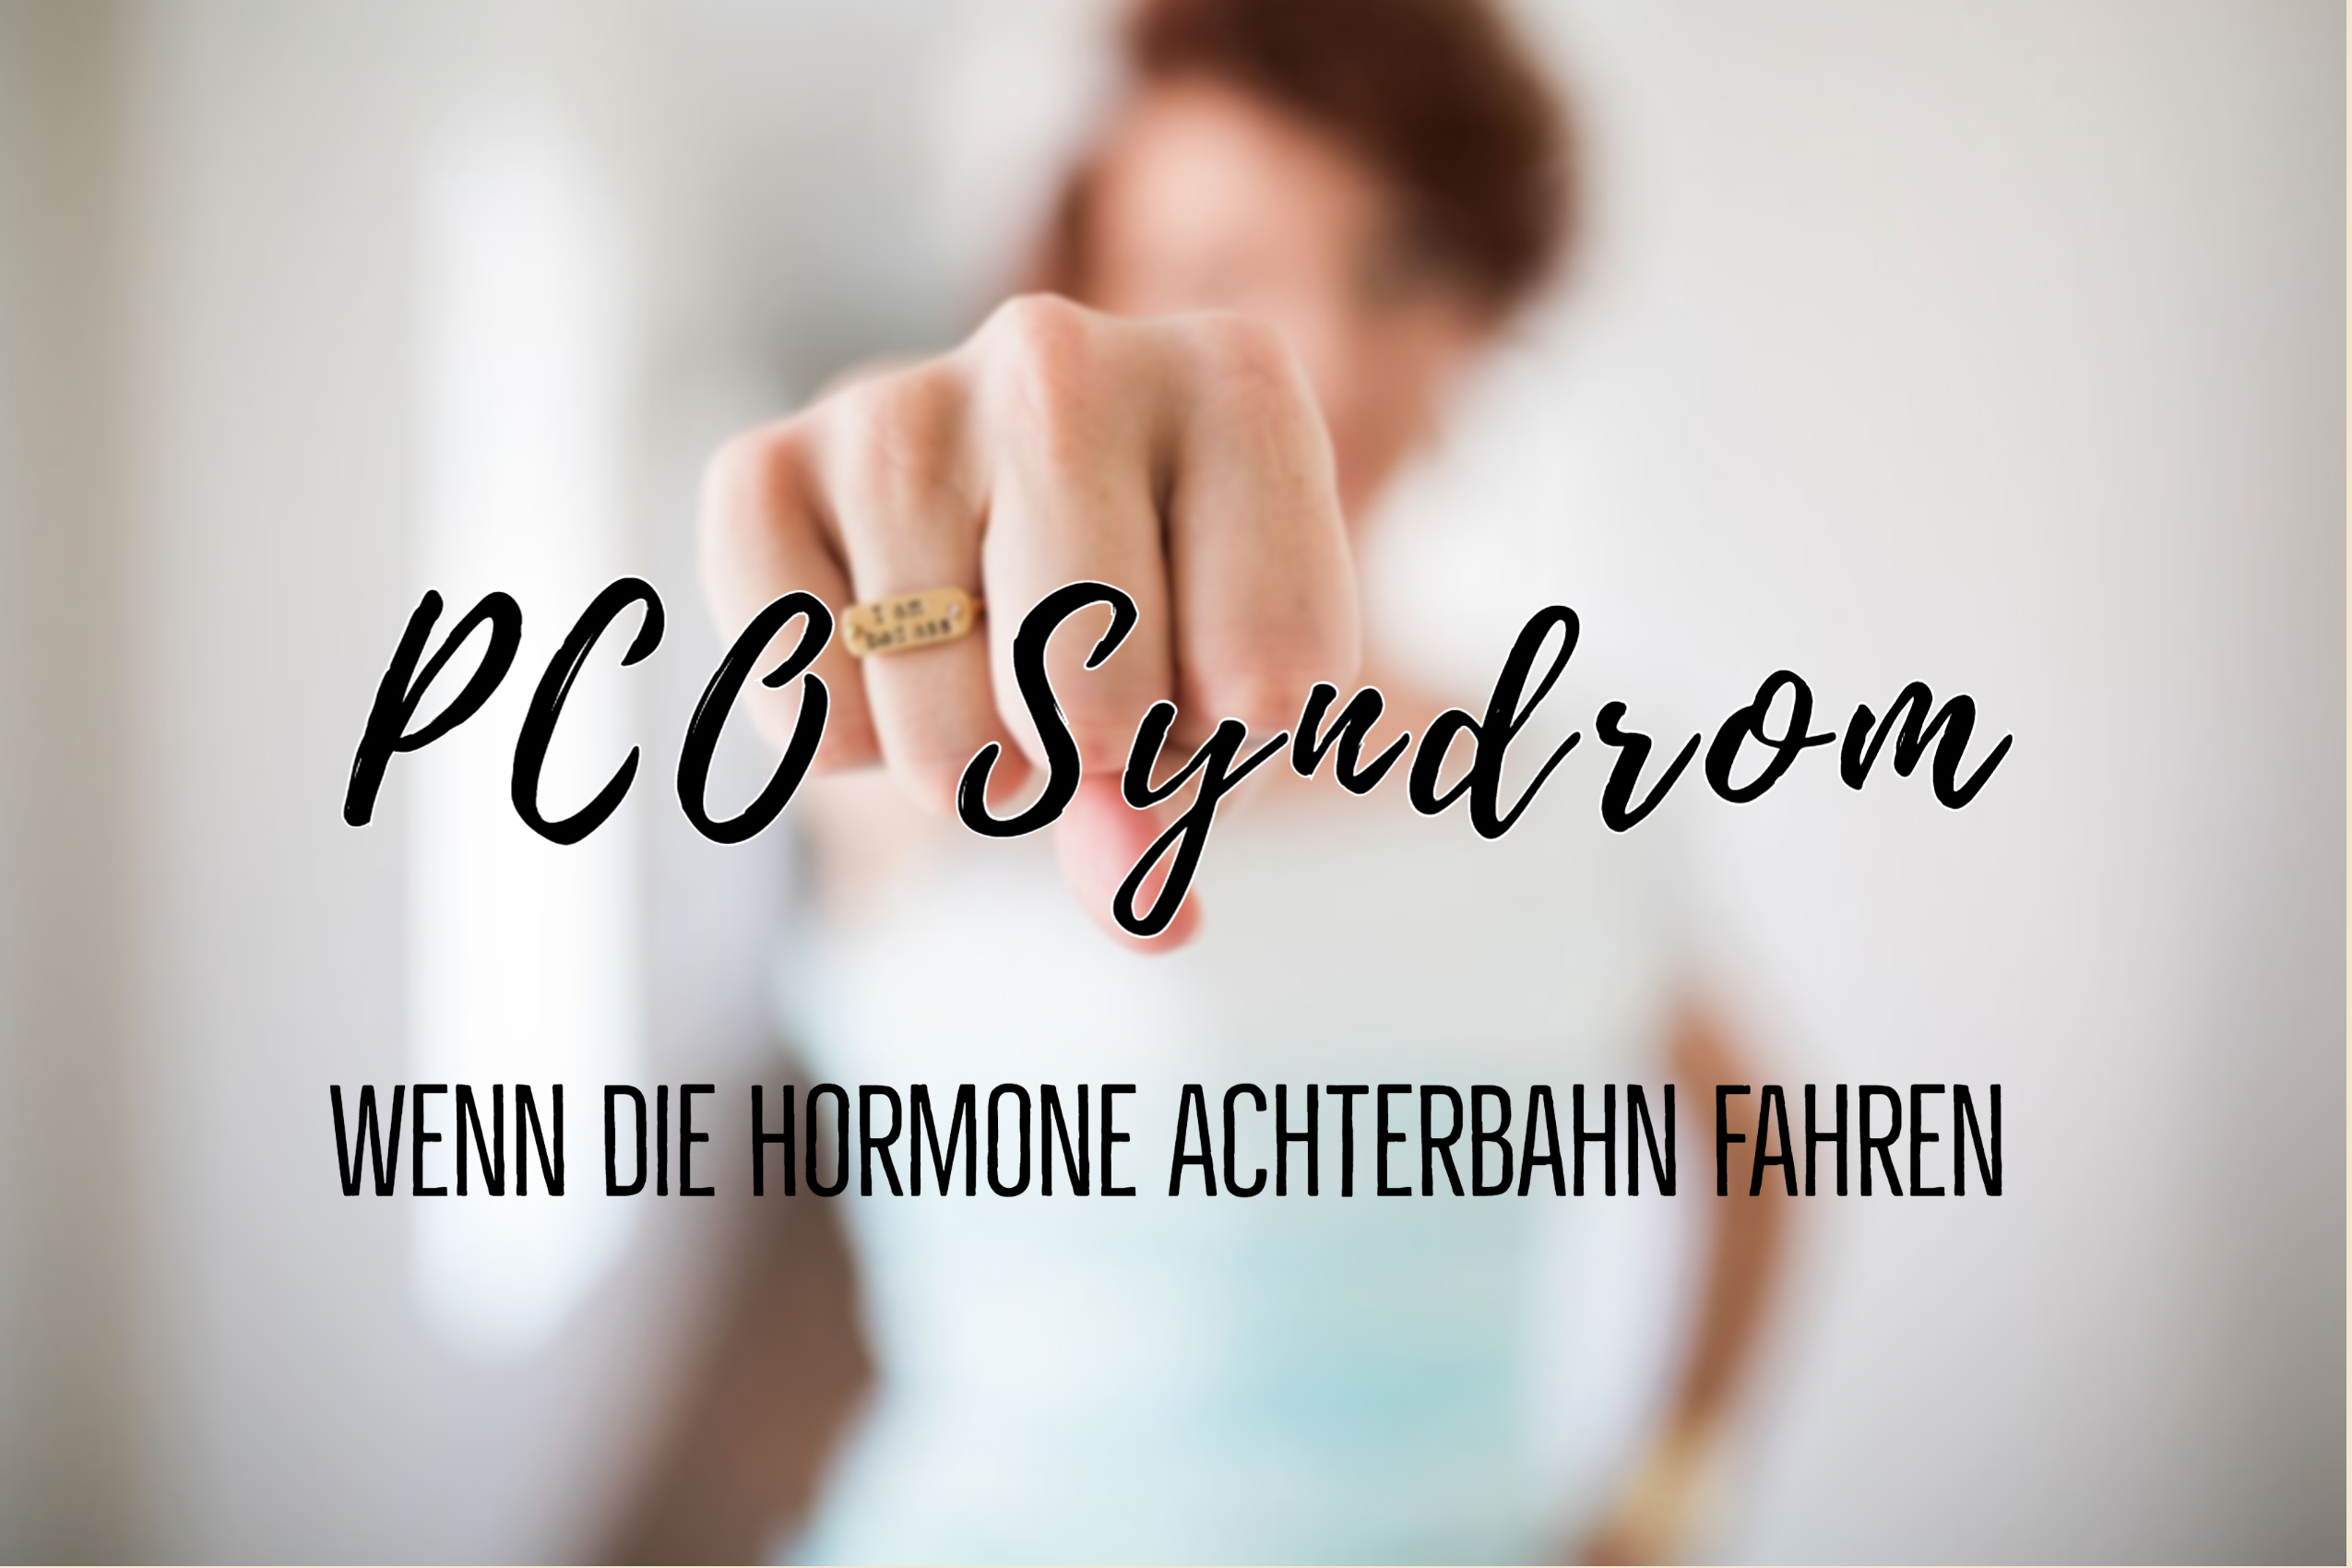 PCO Syndrom